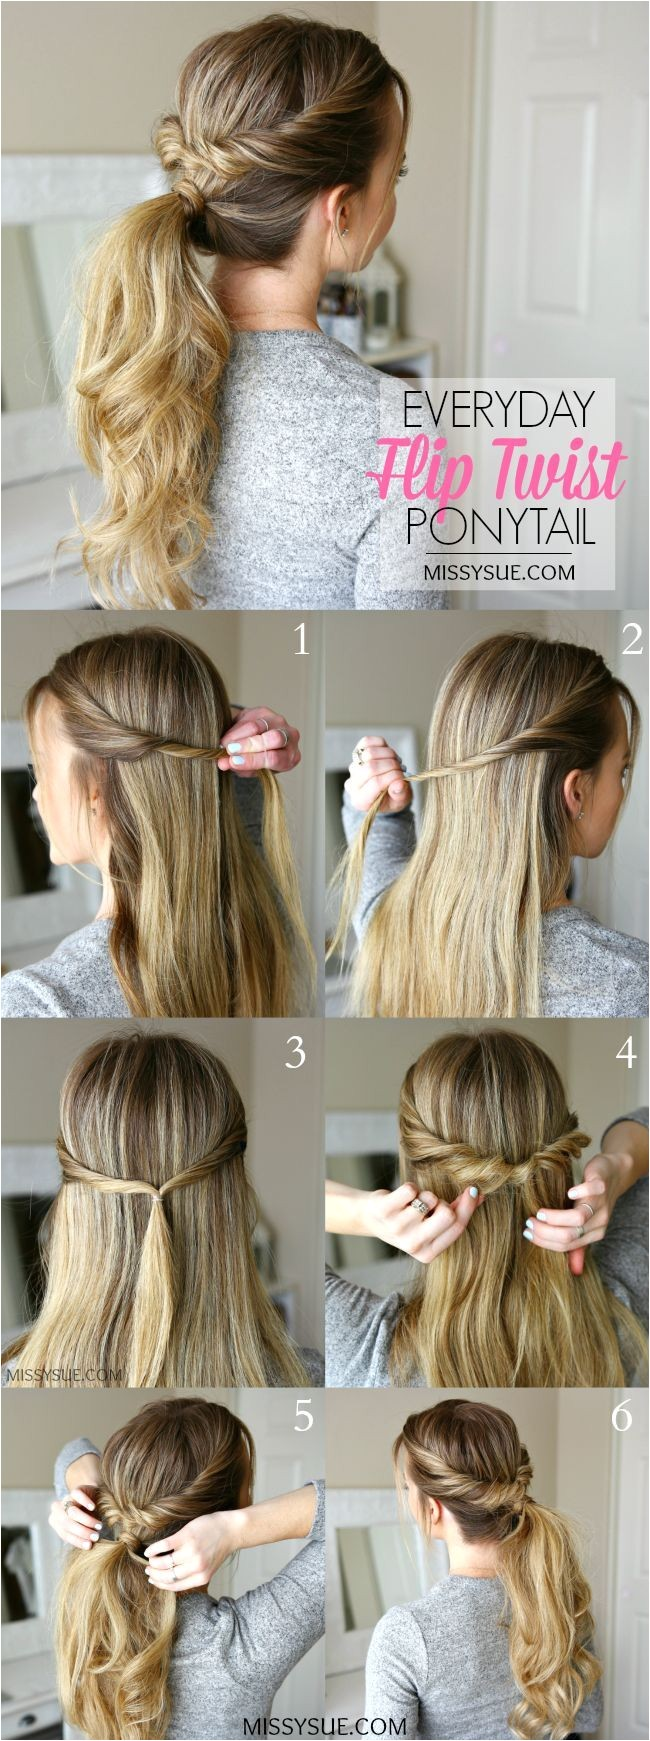 quick work hairstyles